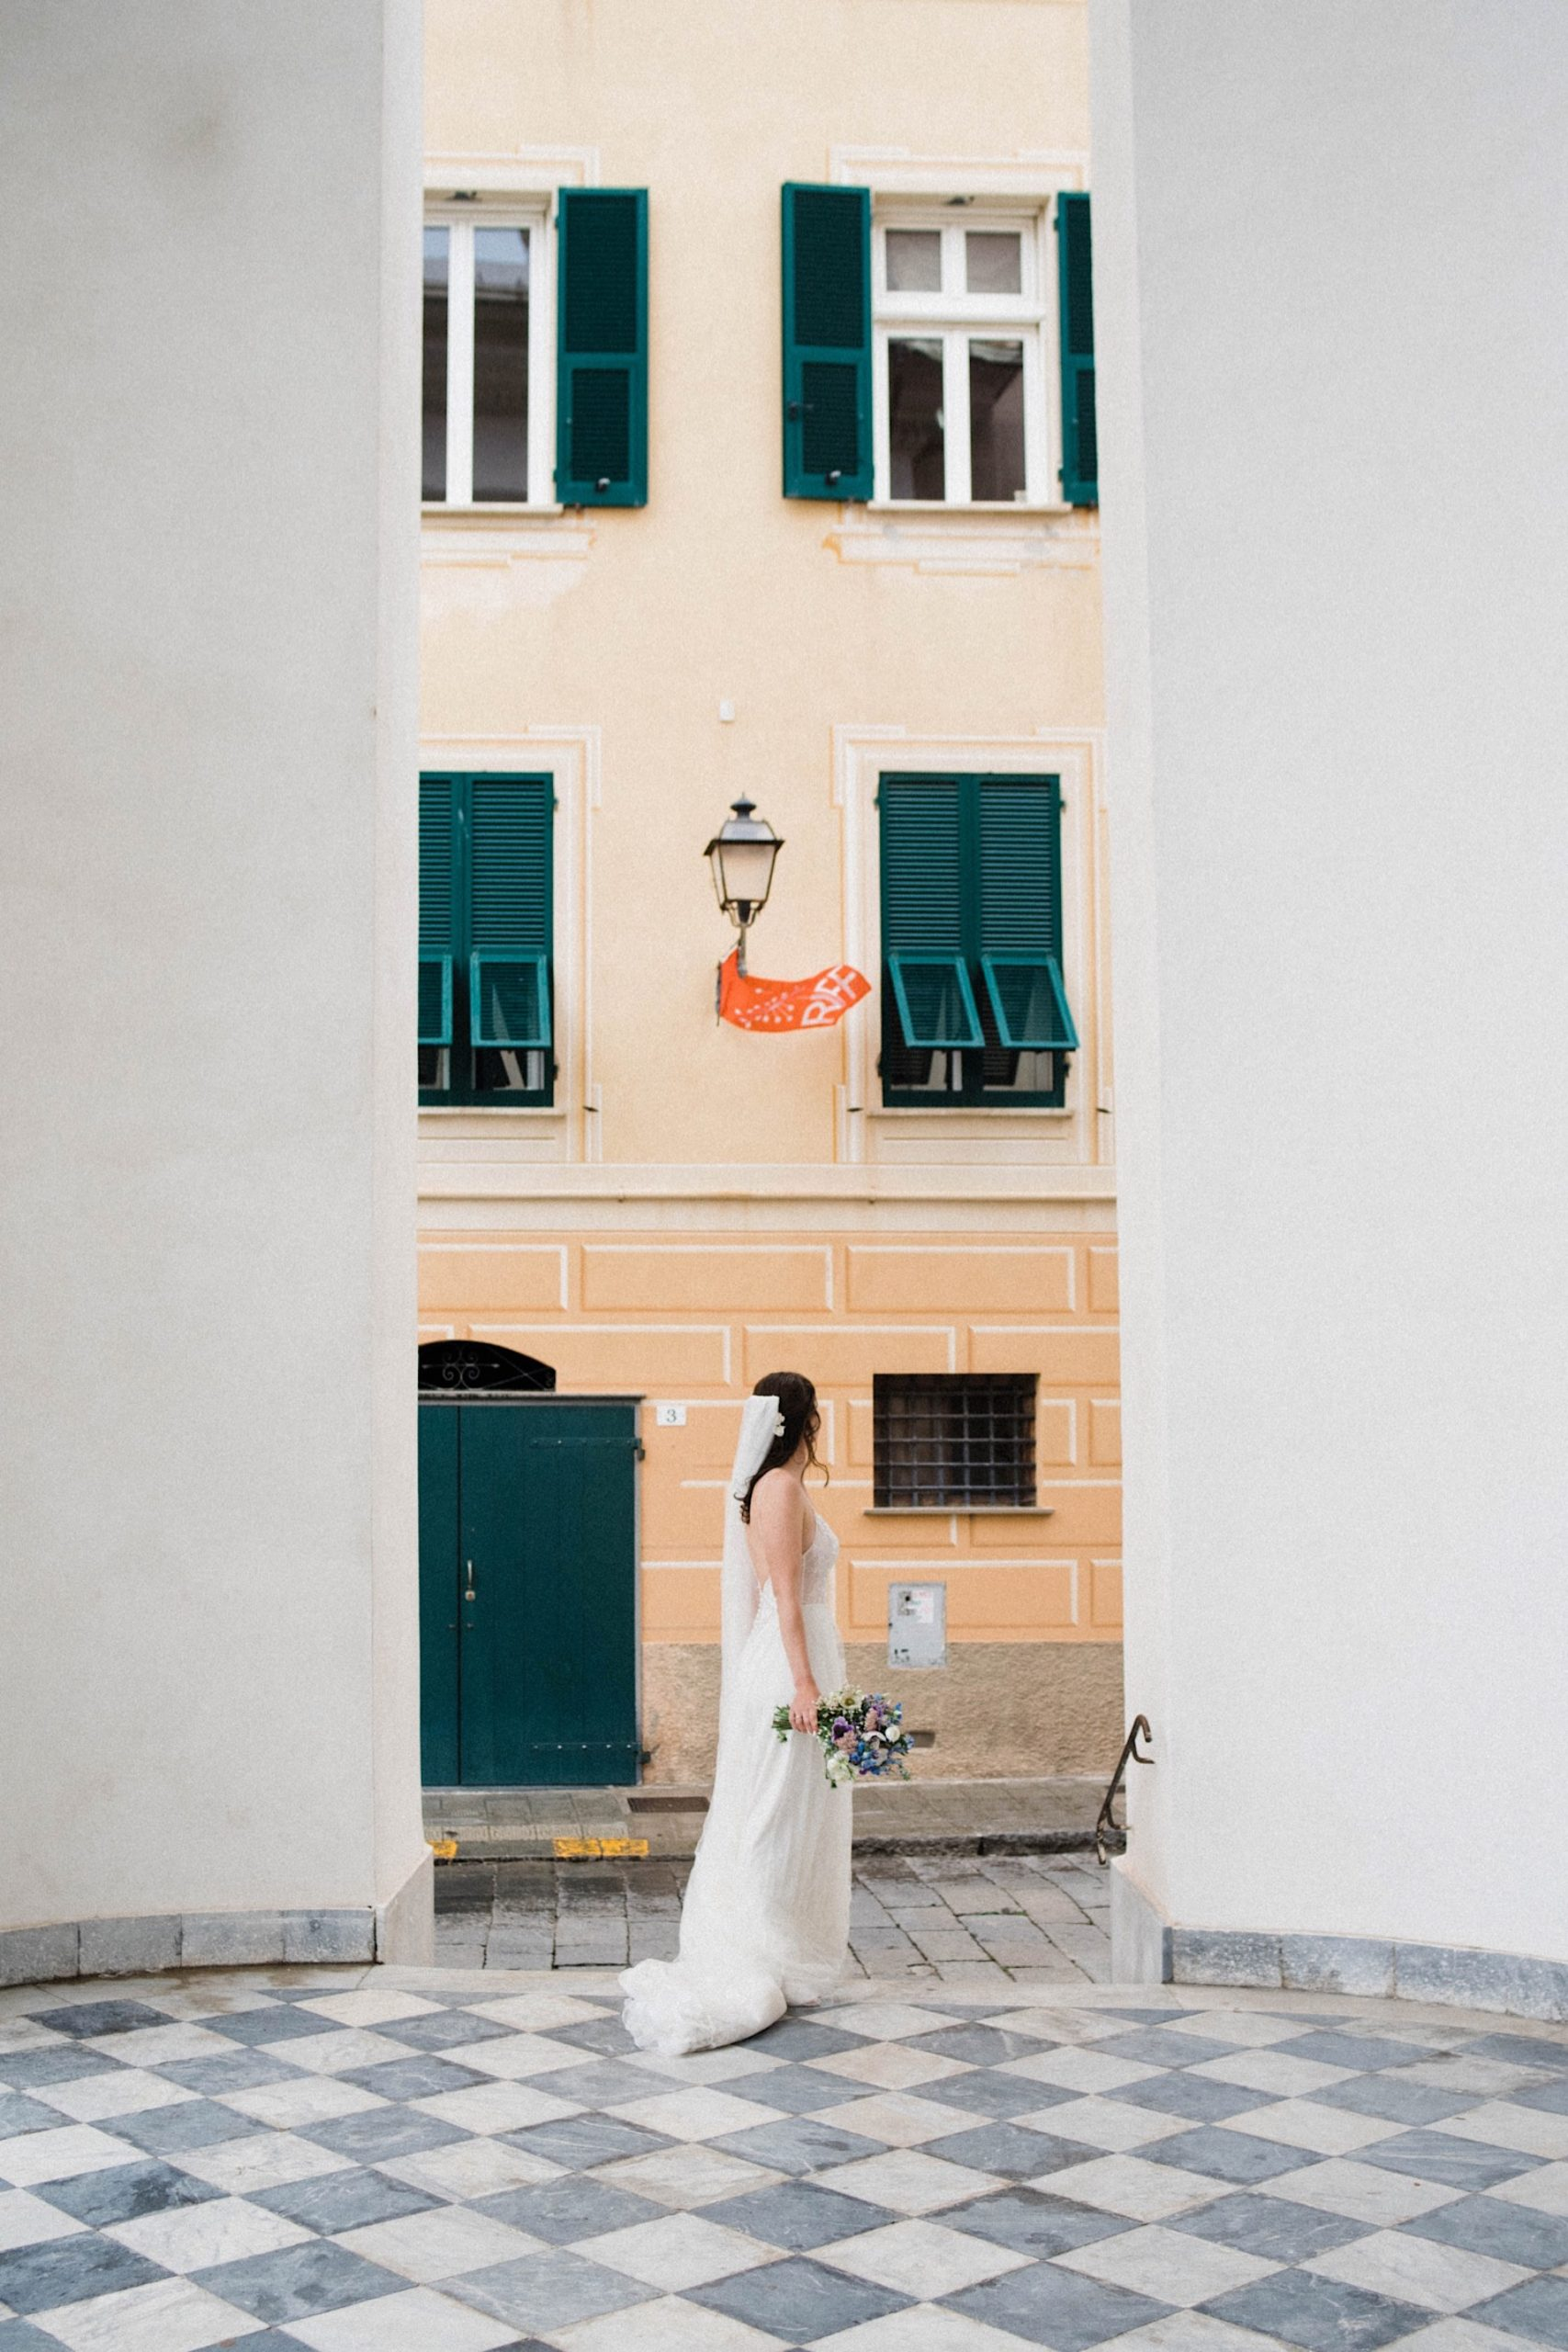 A classic wedding portrait of a bride standing on the portico of an old building in Sestri Levante.